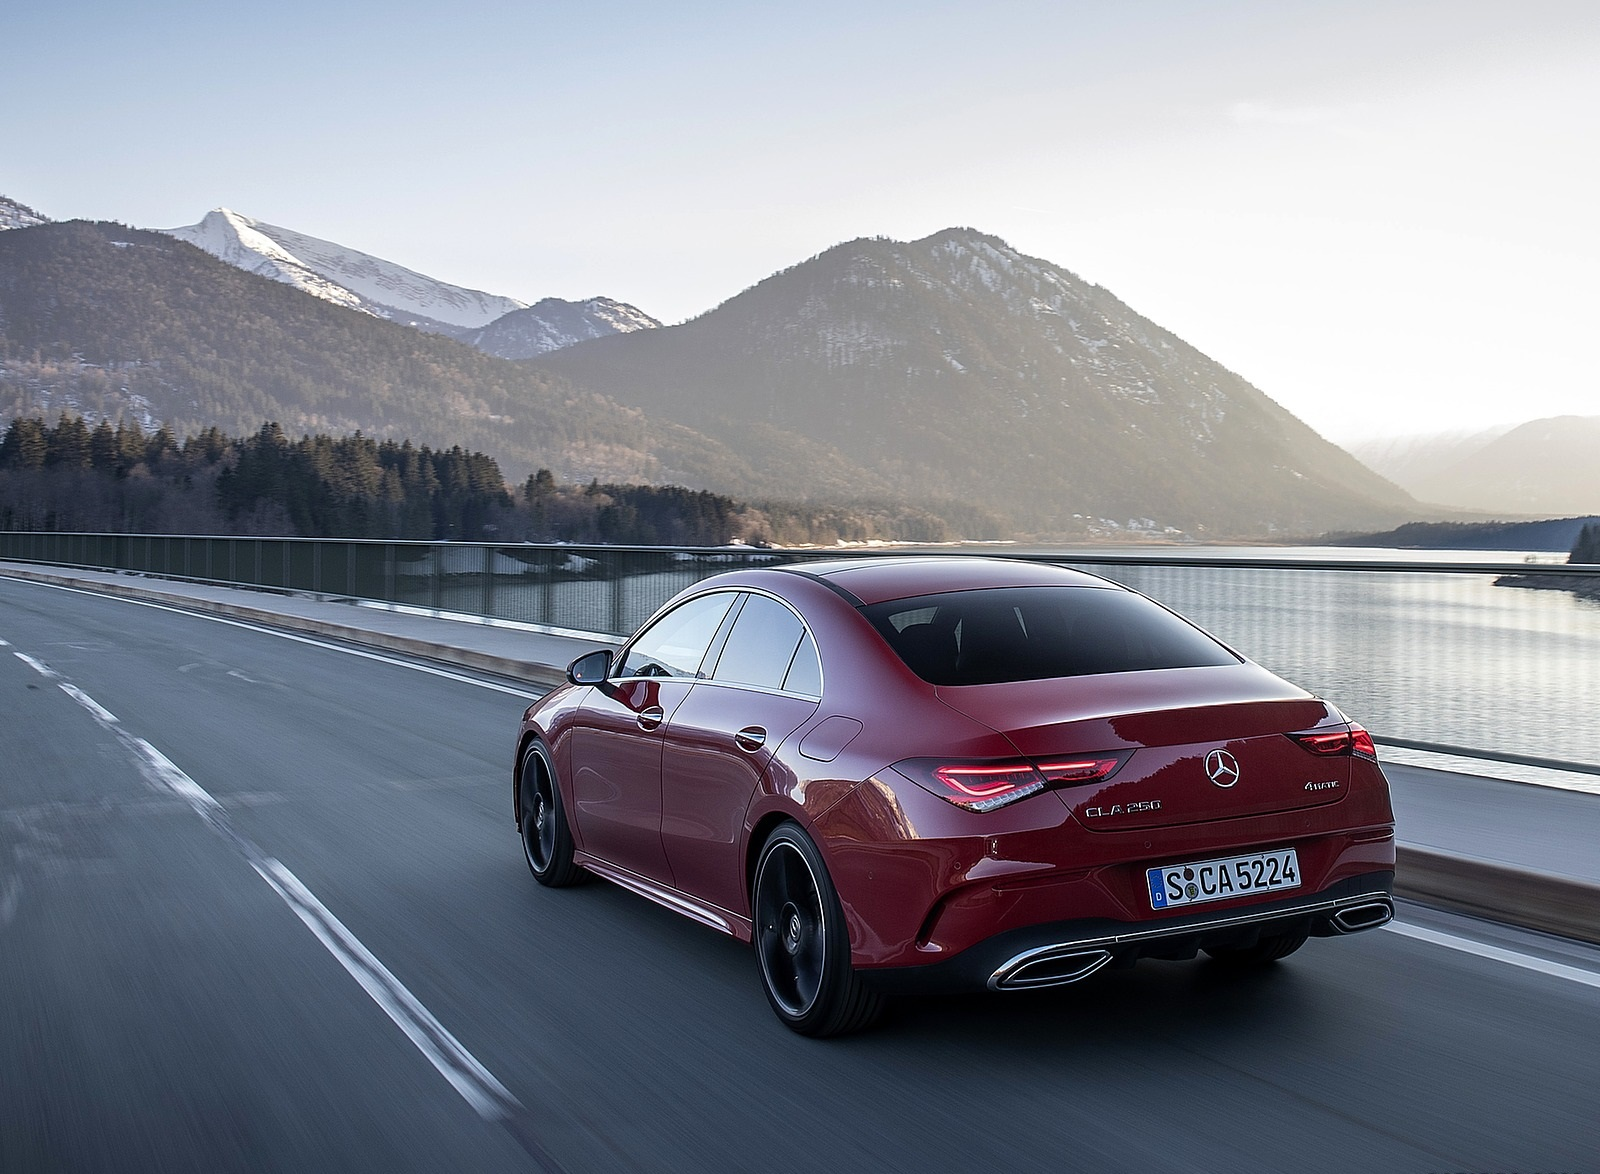 2020 Mercedes-Benz CLA 250 4MATIC Coupe AMG Line (Color: Jupiter Red) Rear Three-Quarter Wallpapers (7)